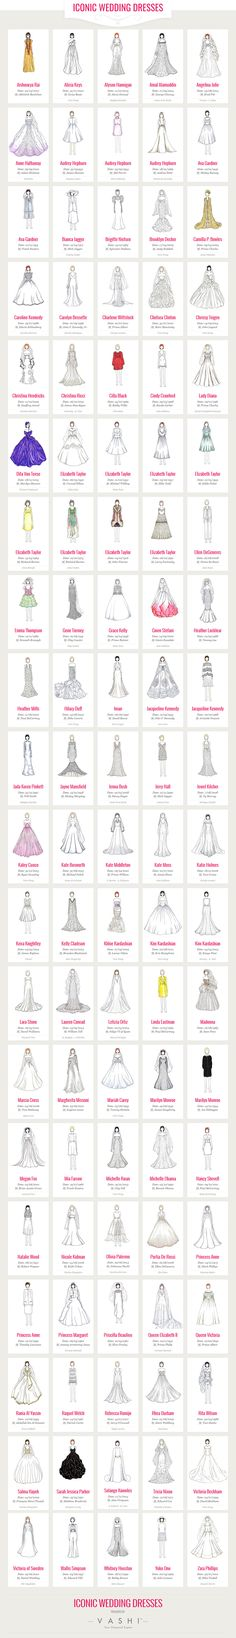 100 of the most iconic celebrity wedding dresses! Did your favorite gown make the cut?